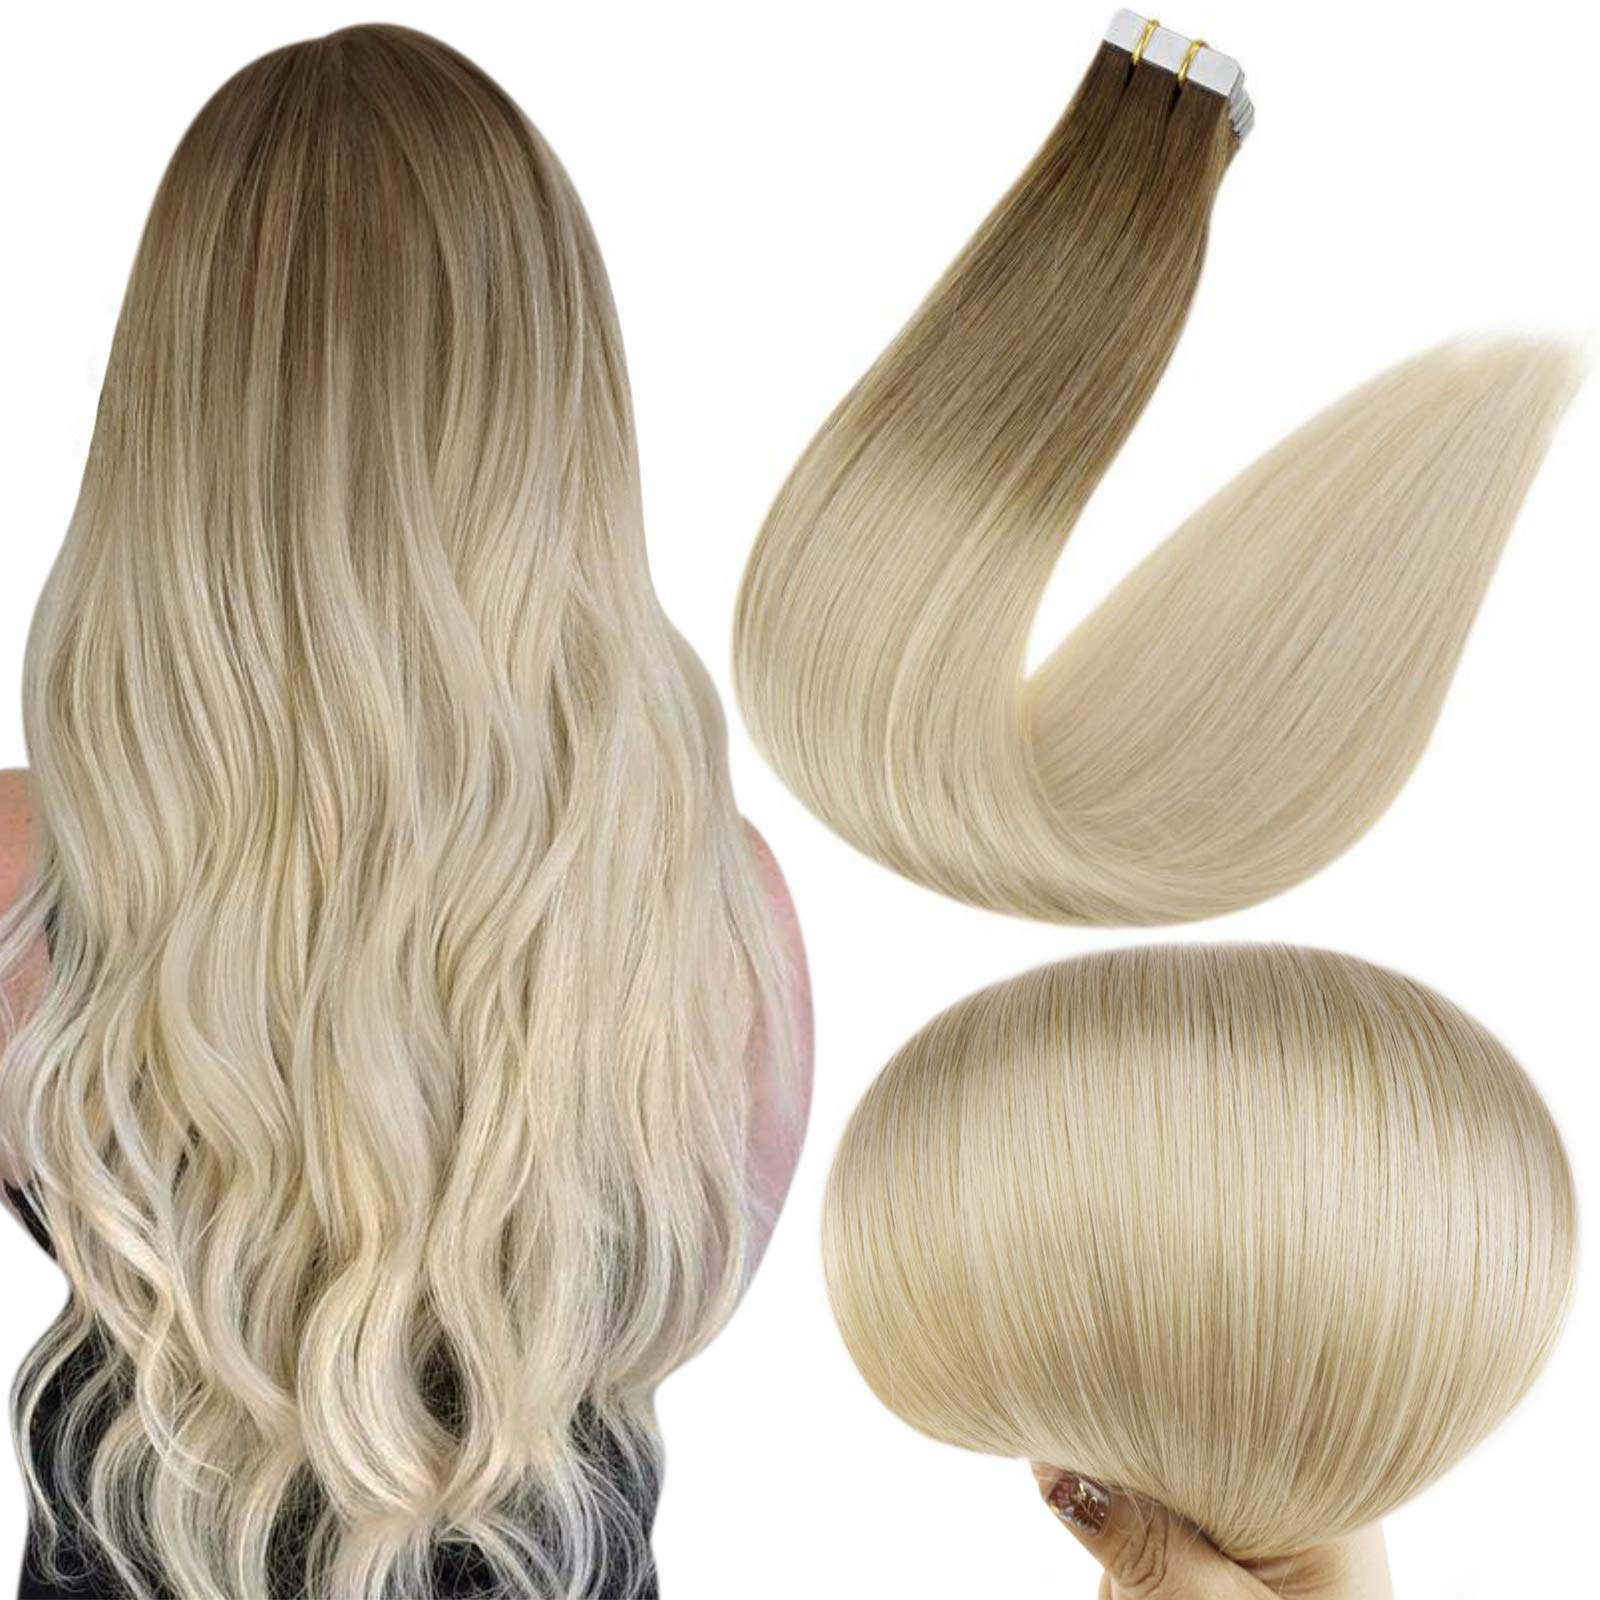 Full Shine 16 Inch Thick Ends 50 Grams Human Tape Hair Diy Dye Color 3 Dark Brown Fading To Color 8 Ash Brown And Color 613 Blonde In Tape Hair Extensions 20 Pieces